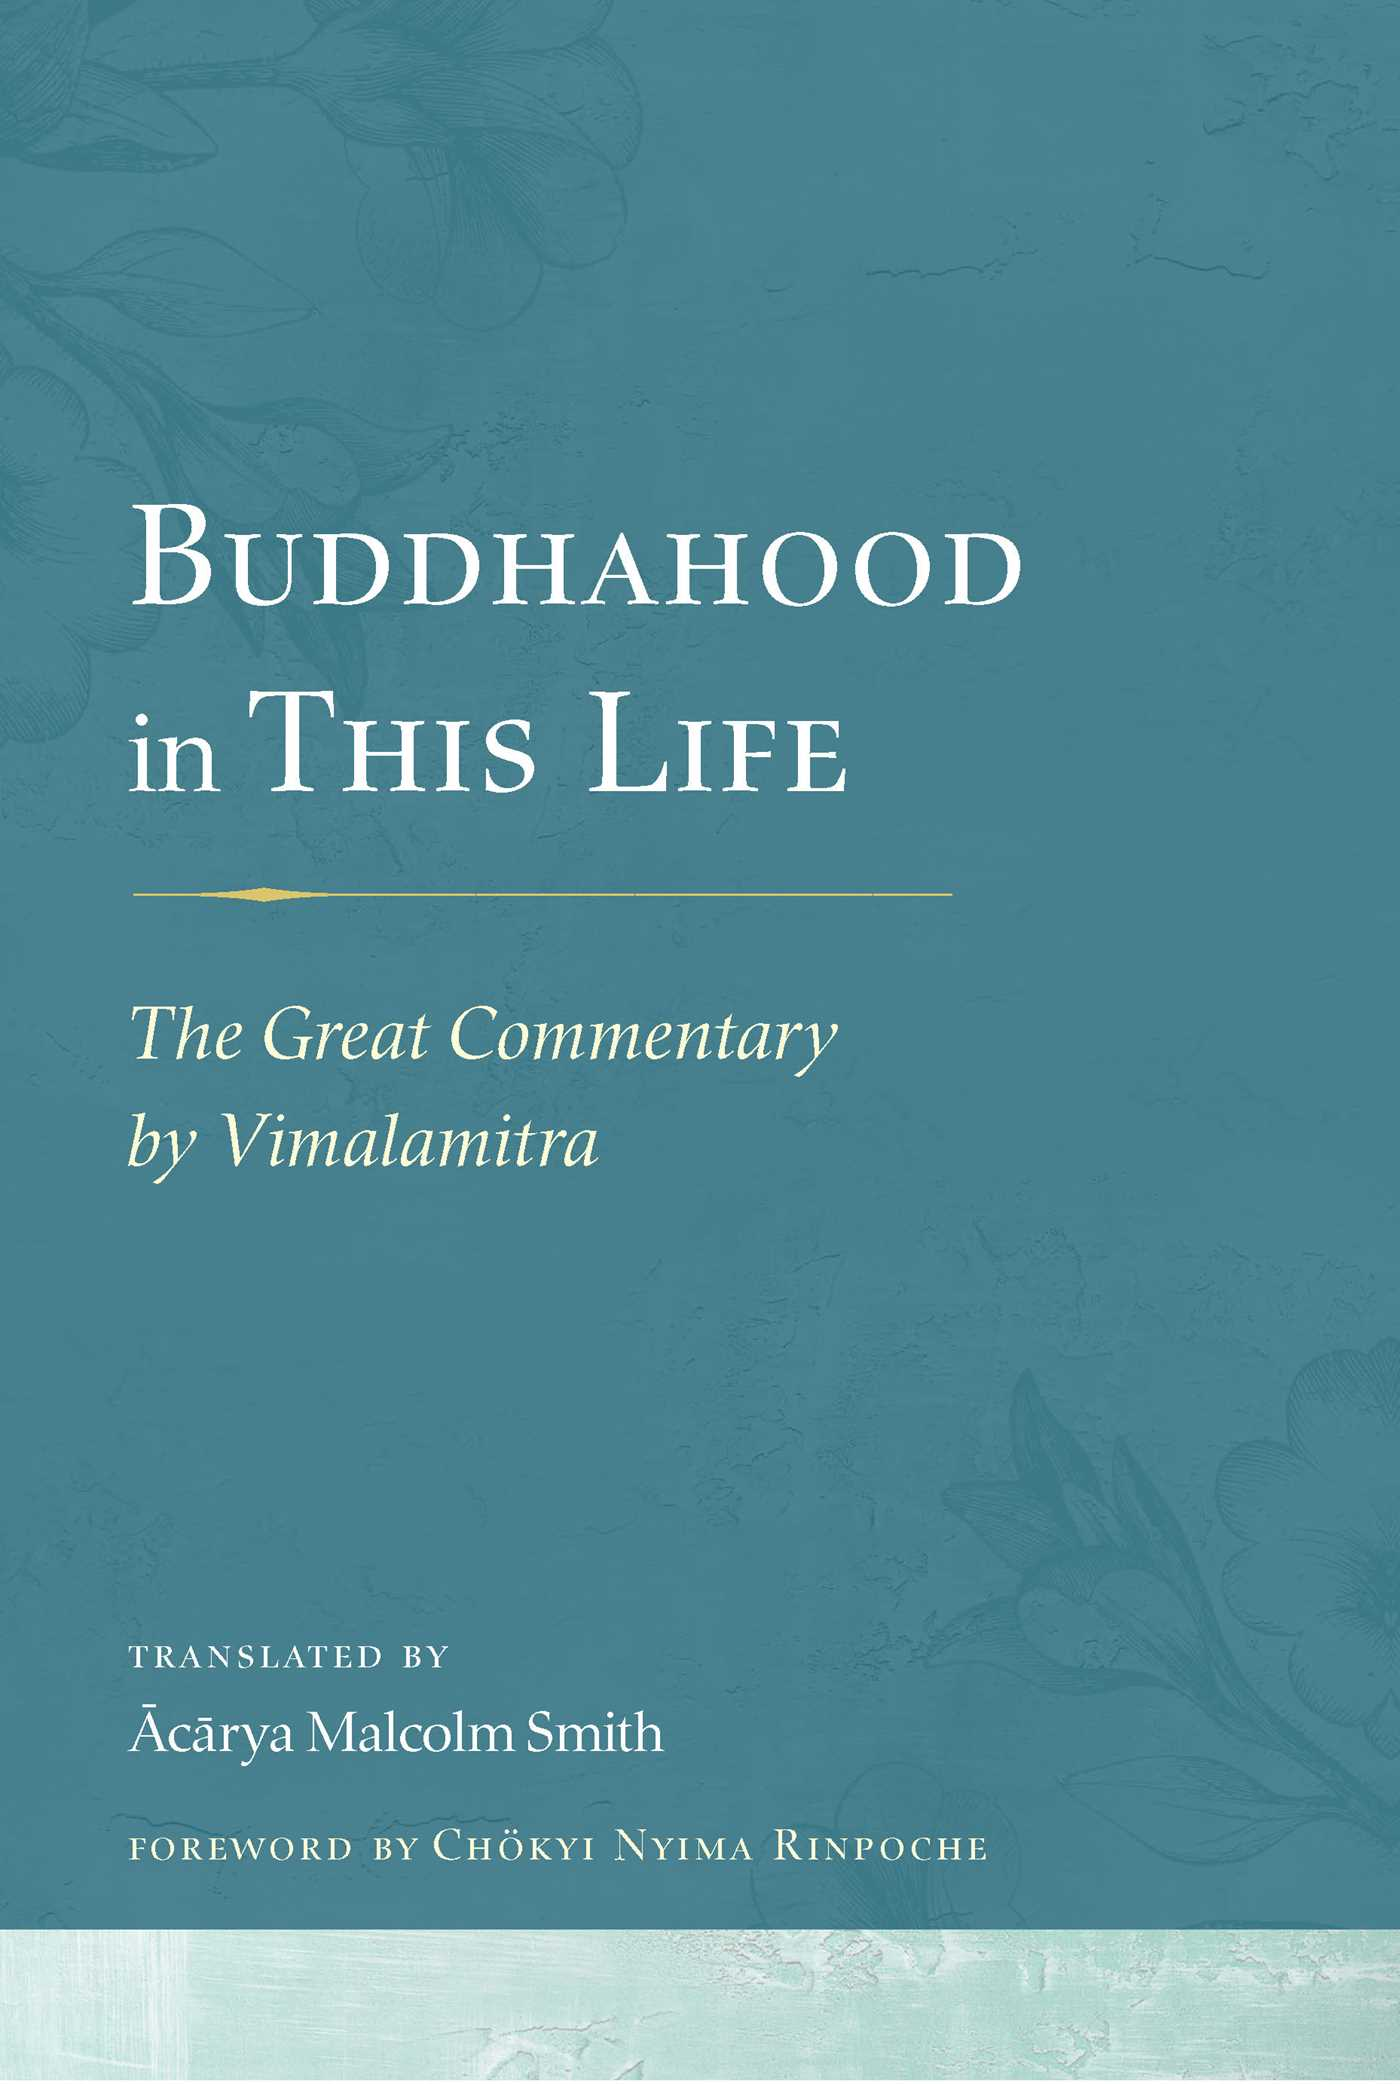 Buddhahood in this life 9781614293453 hr